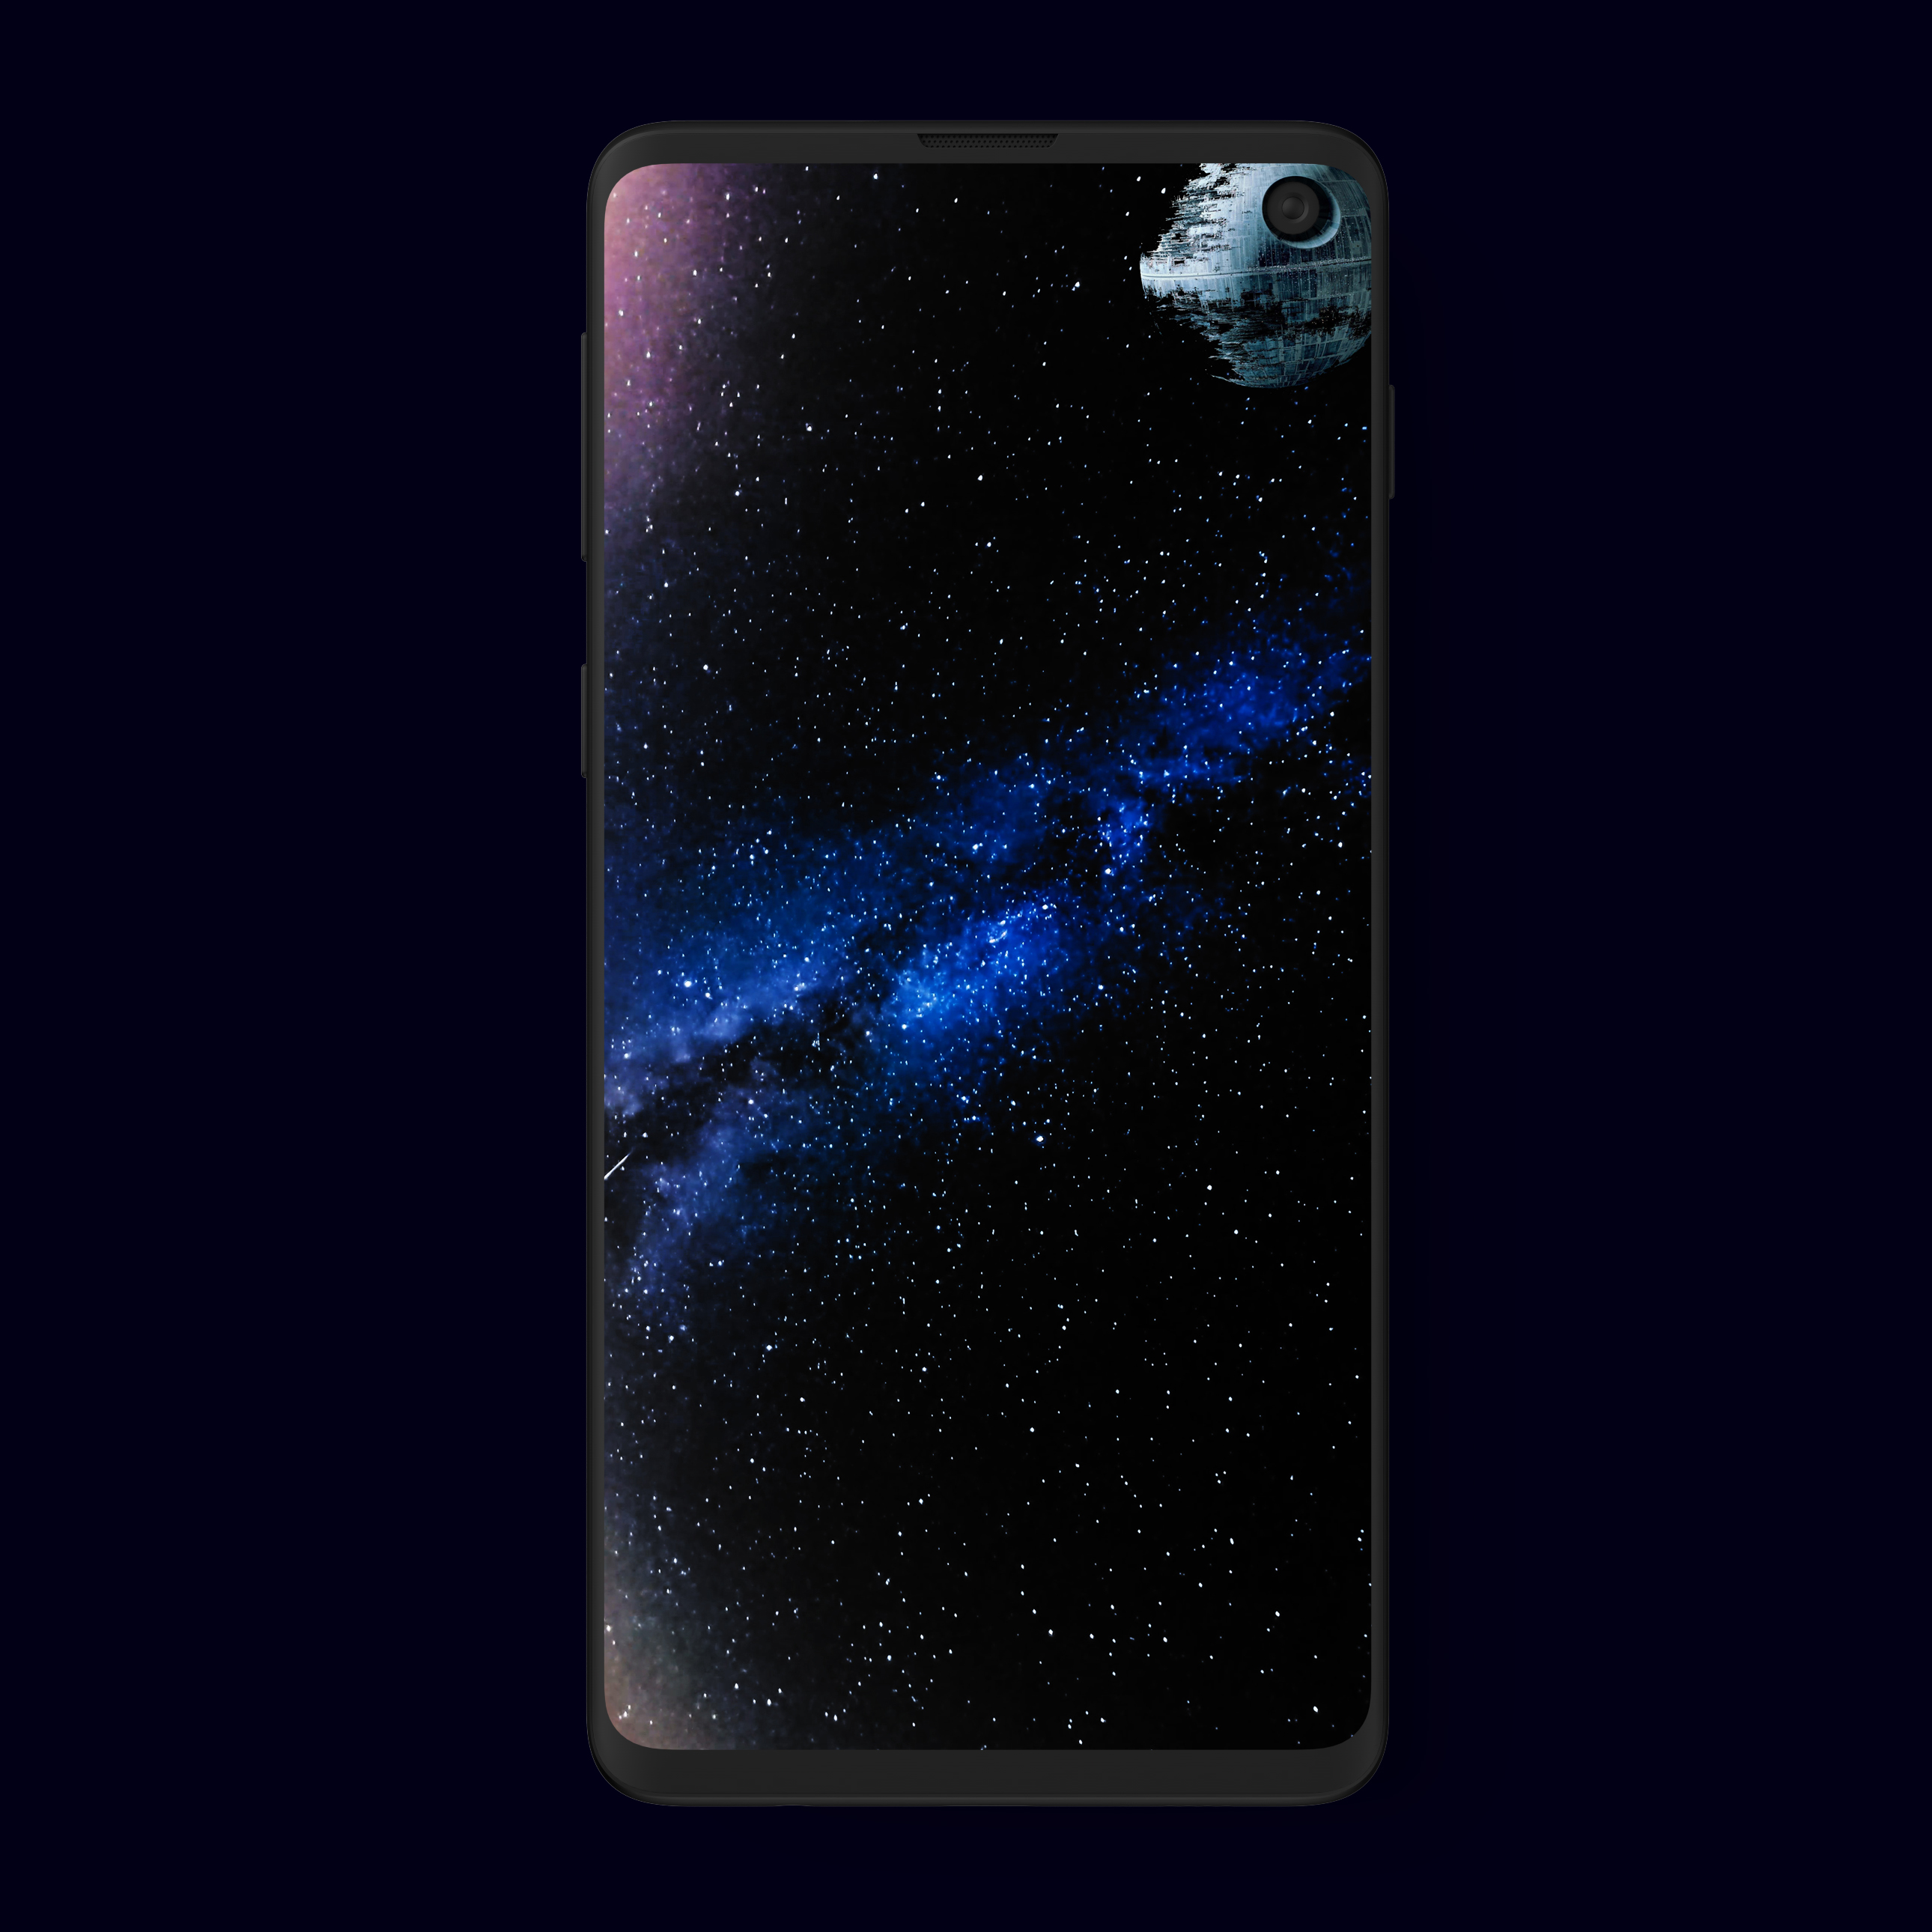 Samsung Galaxy S10e Wallpapers Wallpaper Cave